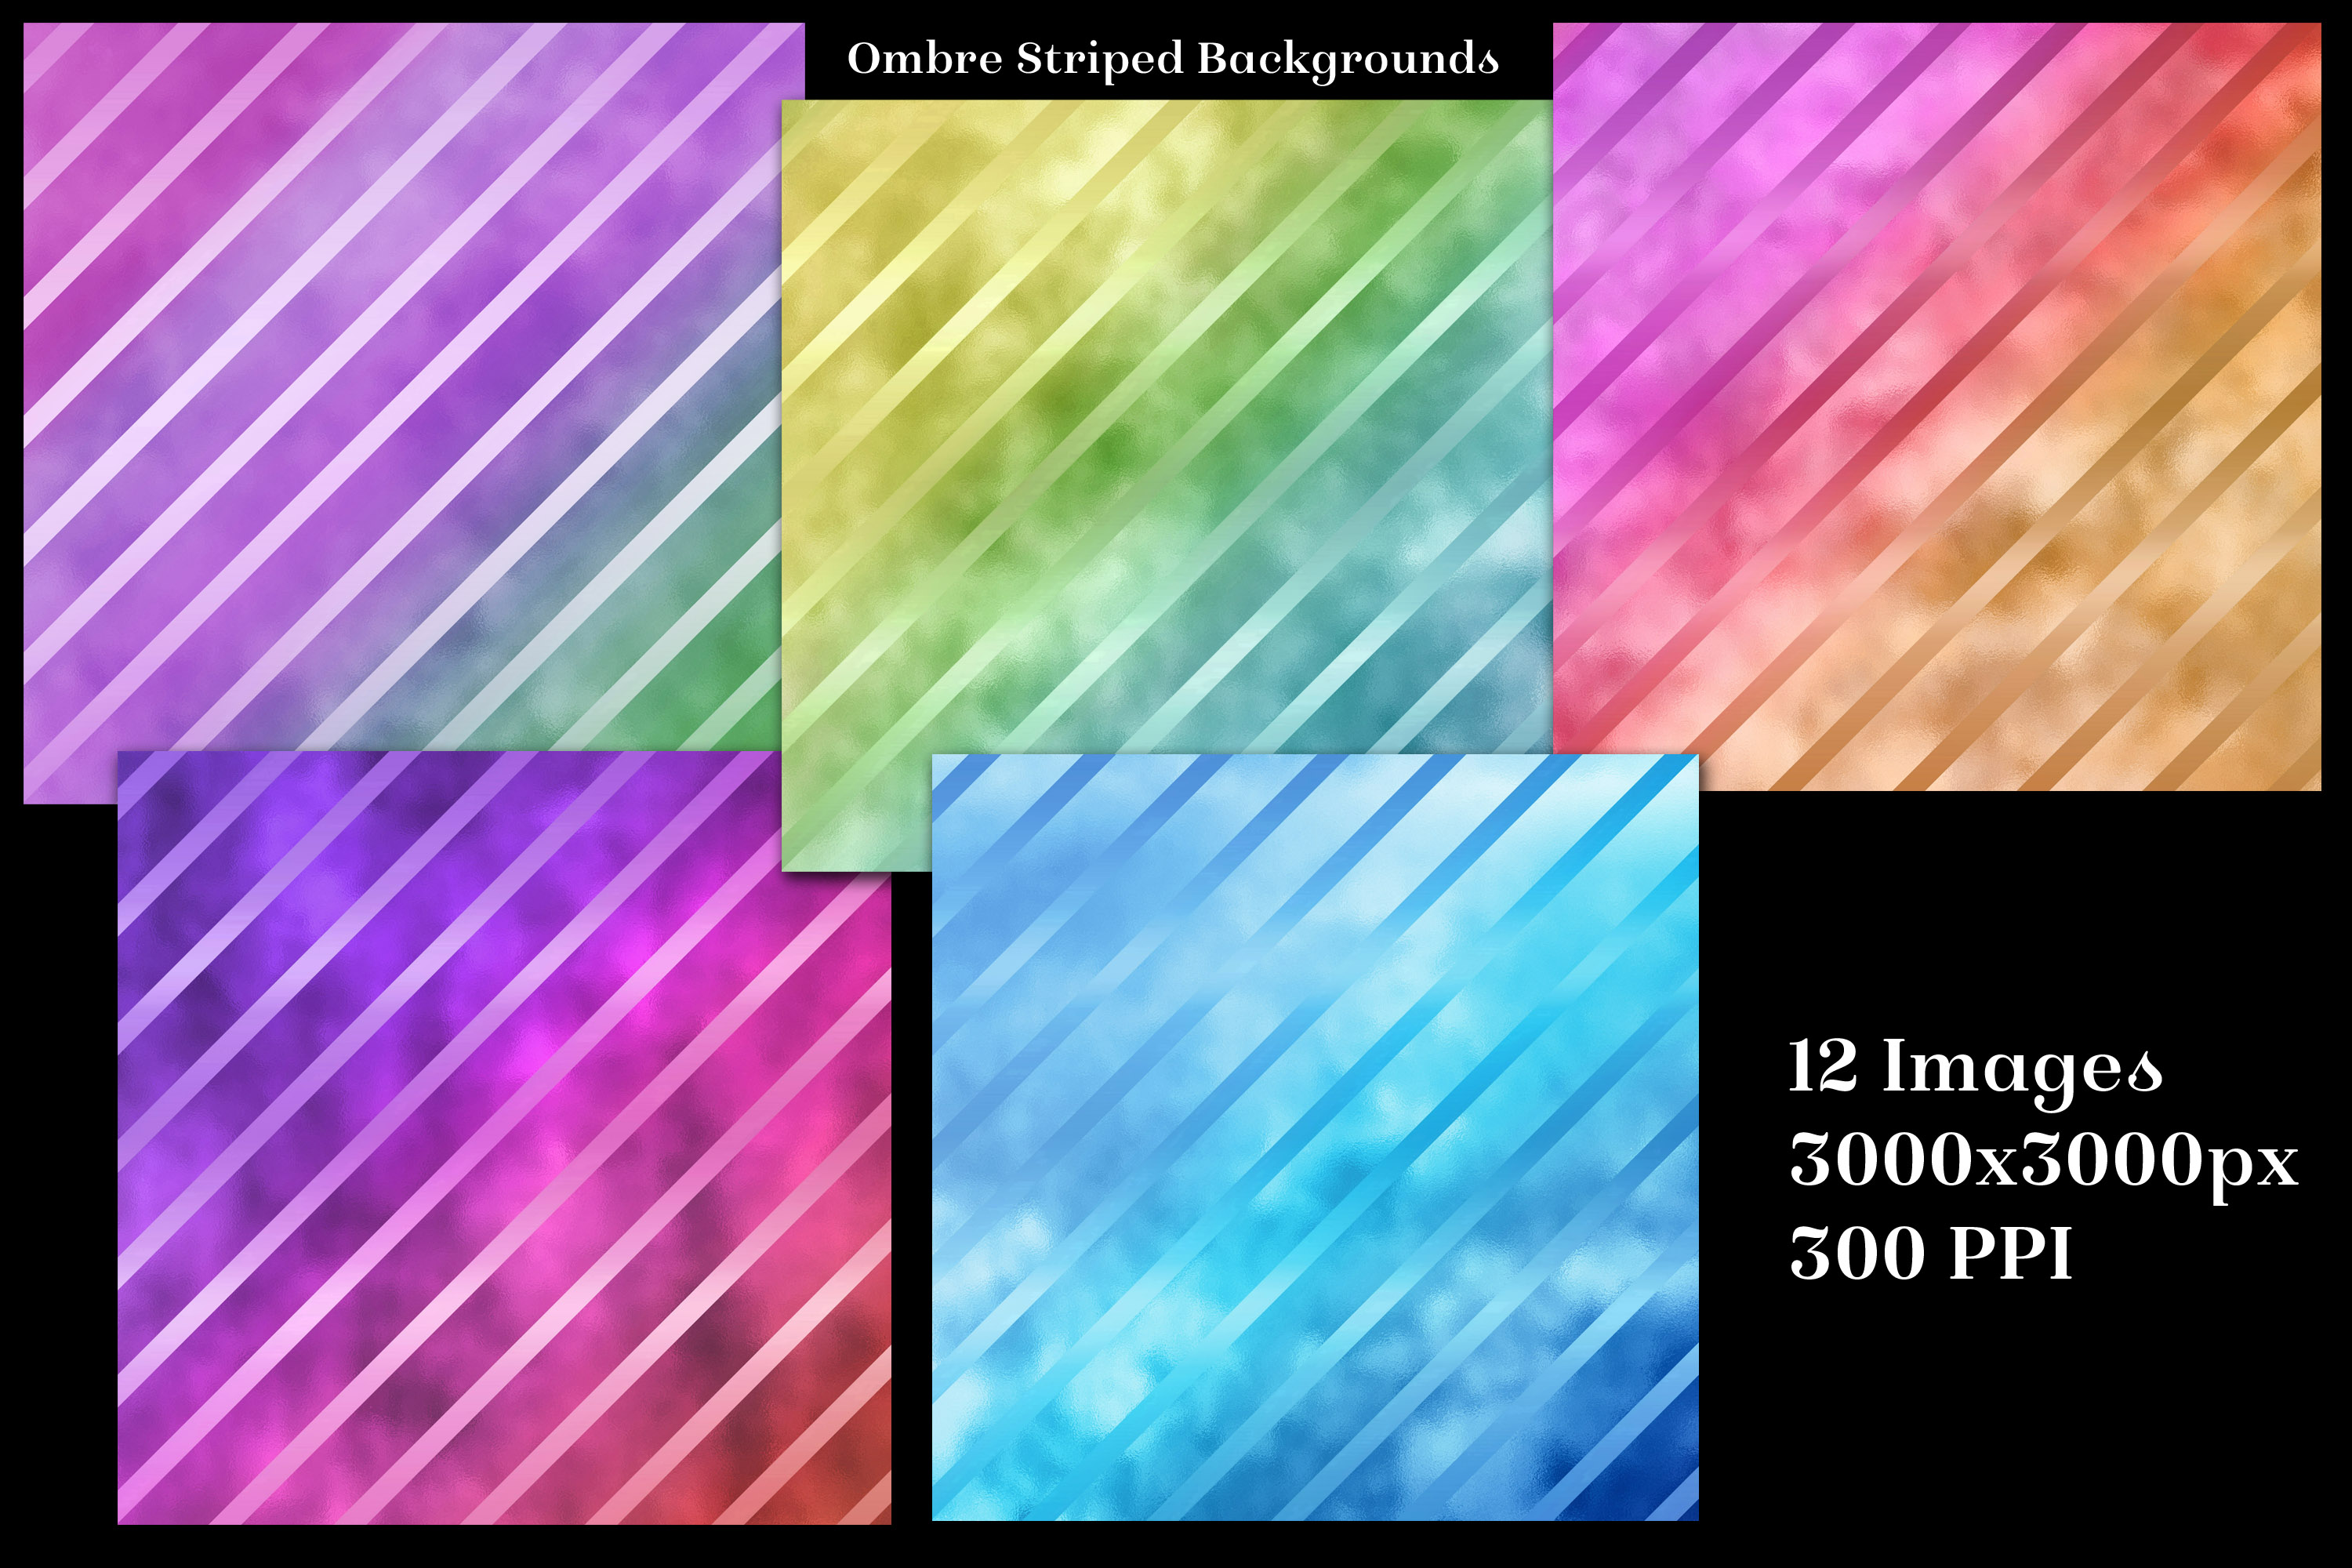 Ombre Striped Glass Backgrounds - 12 Image Textures Set example image 2